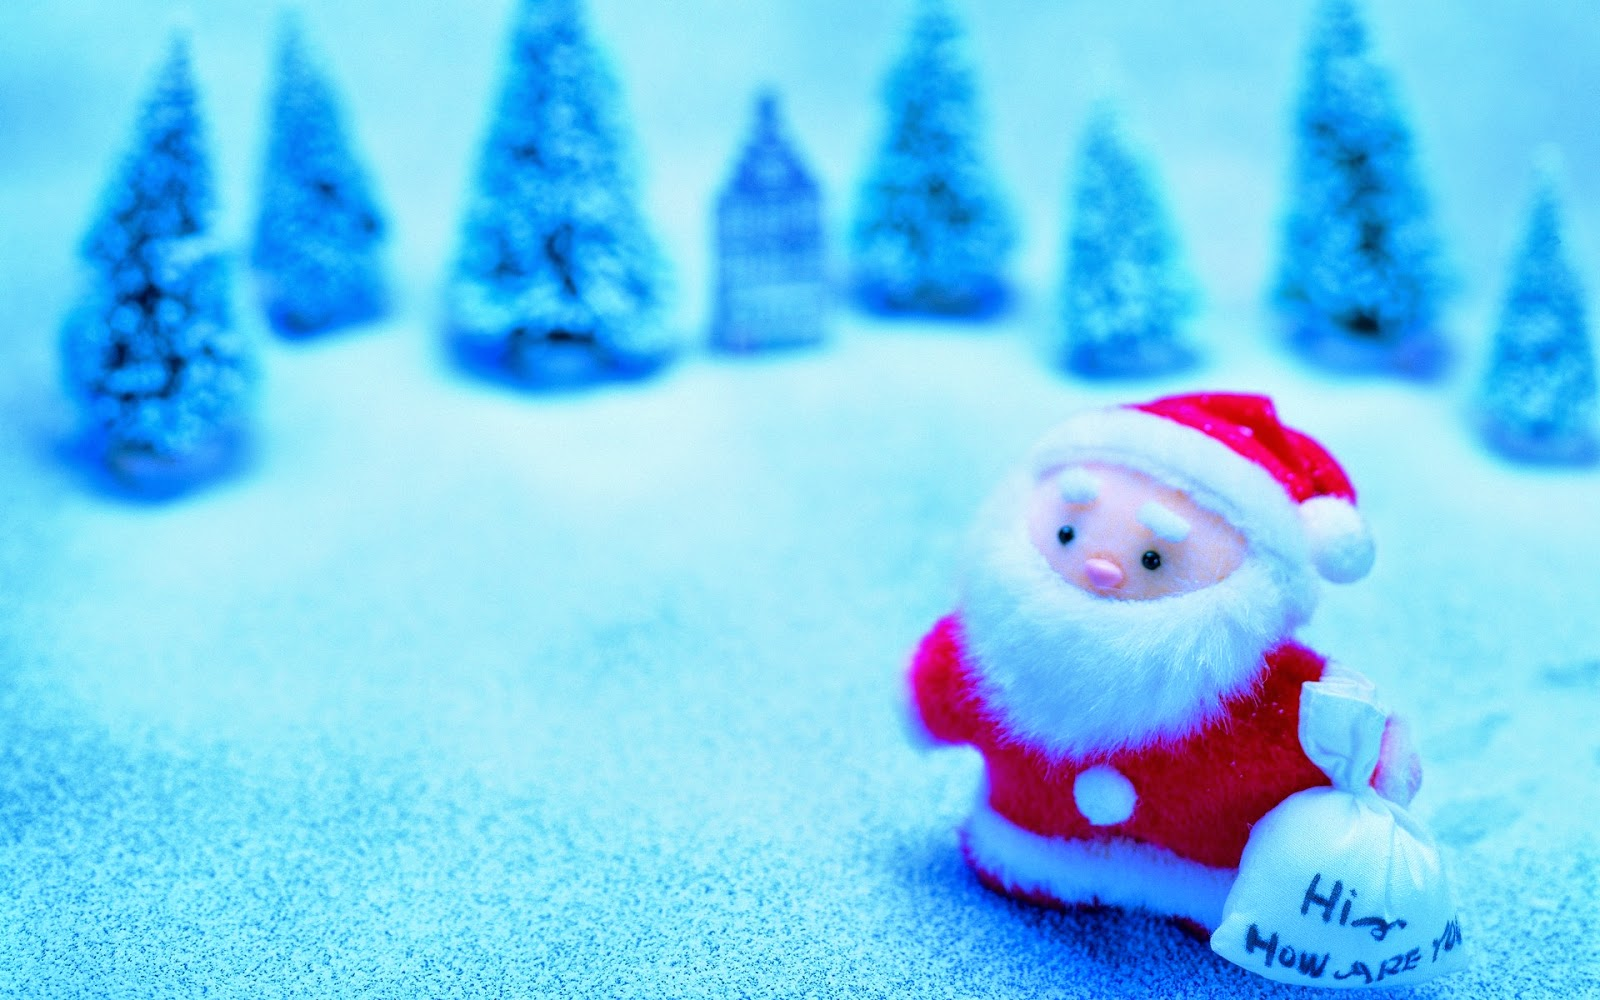 cute-little-santa-claus-doll-image-hd-wallpaper-free-download-for-desktop-tablet.jpg